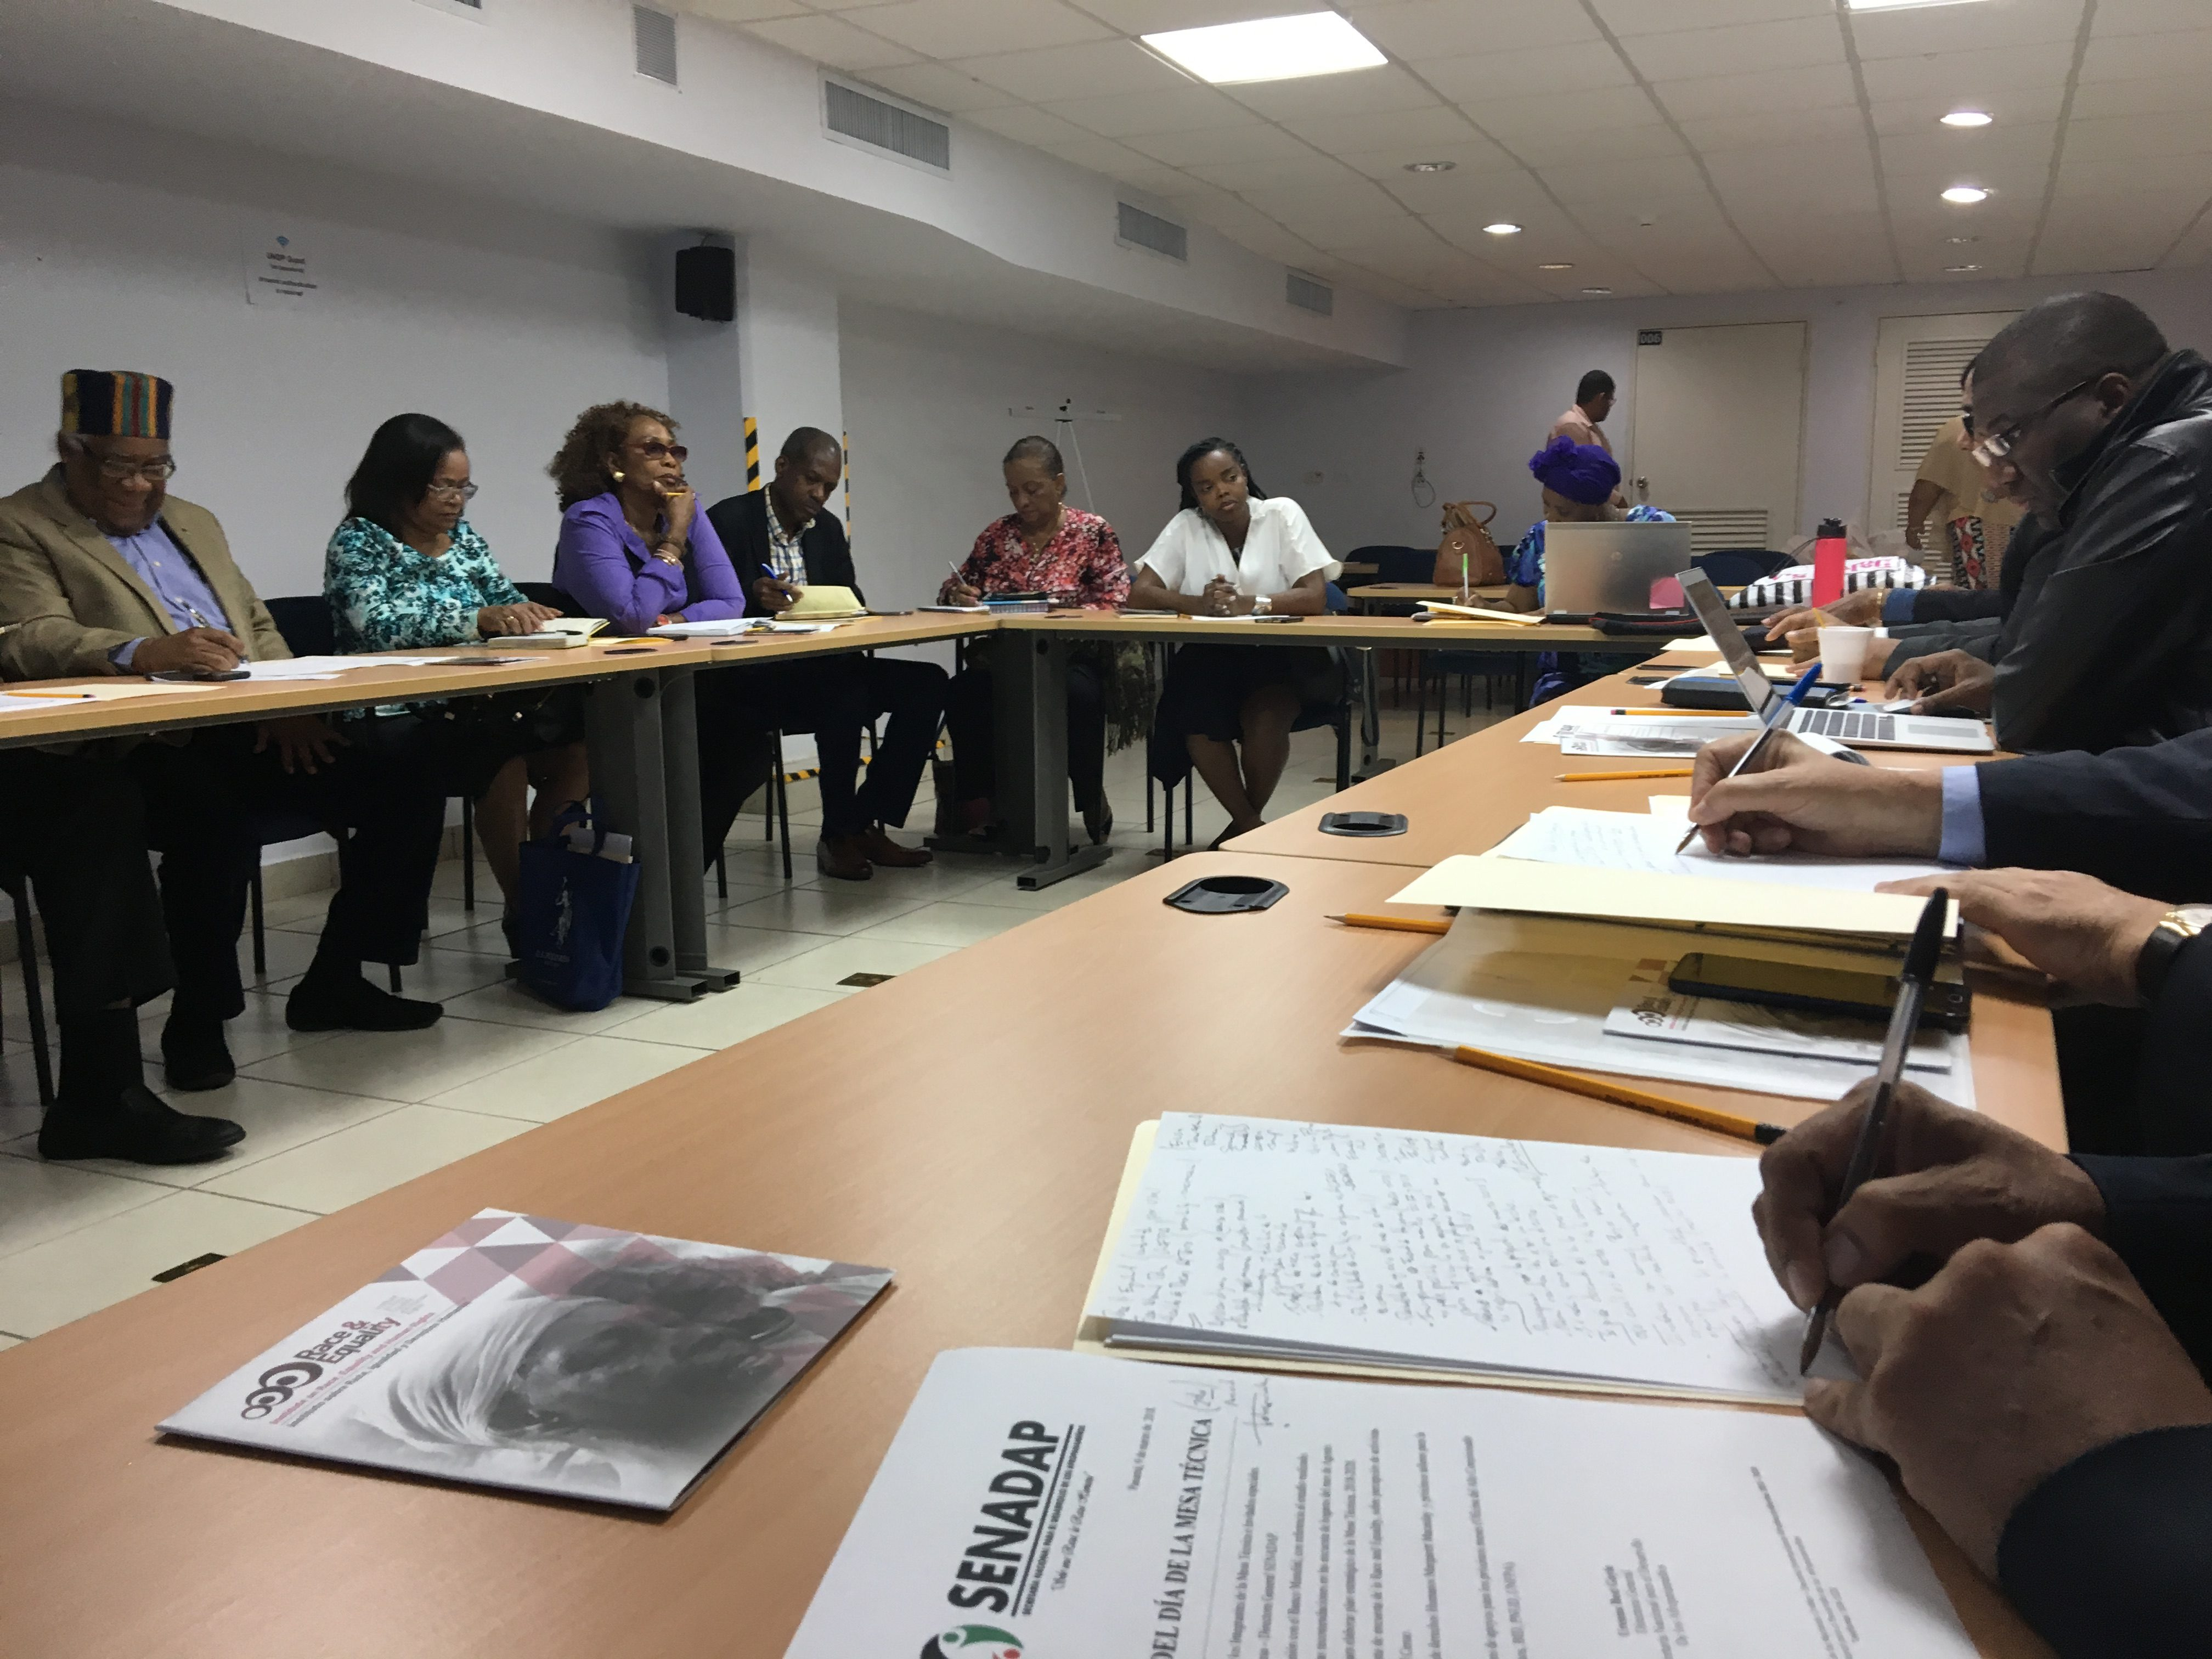 Supporting the Visiblity of Afro-Panamanians in National Statistics